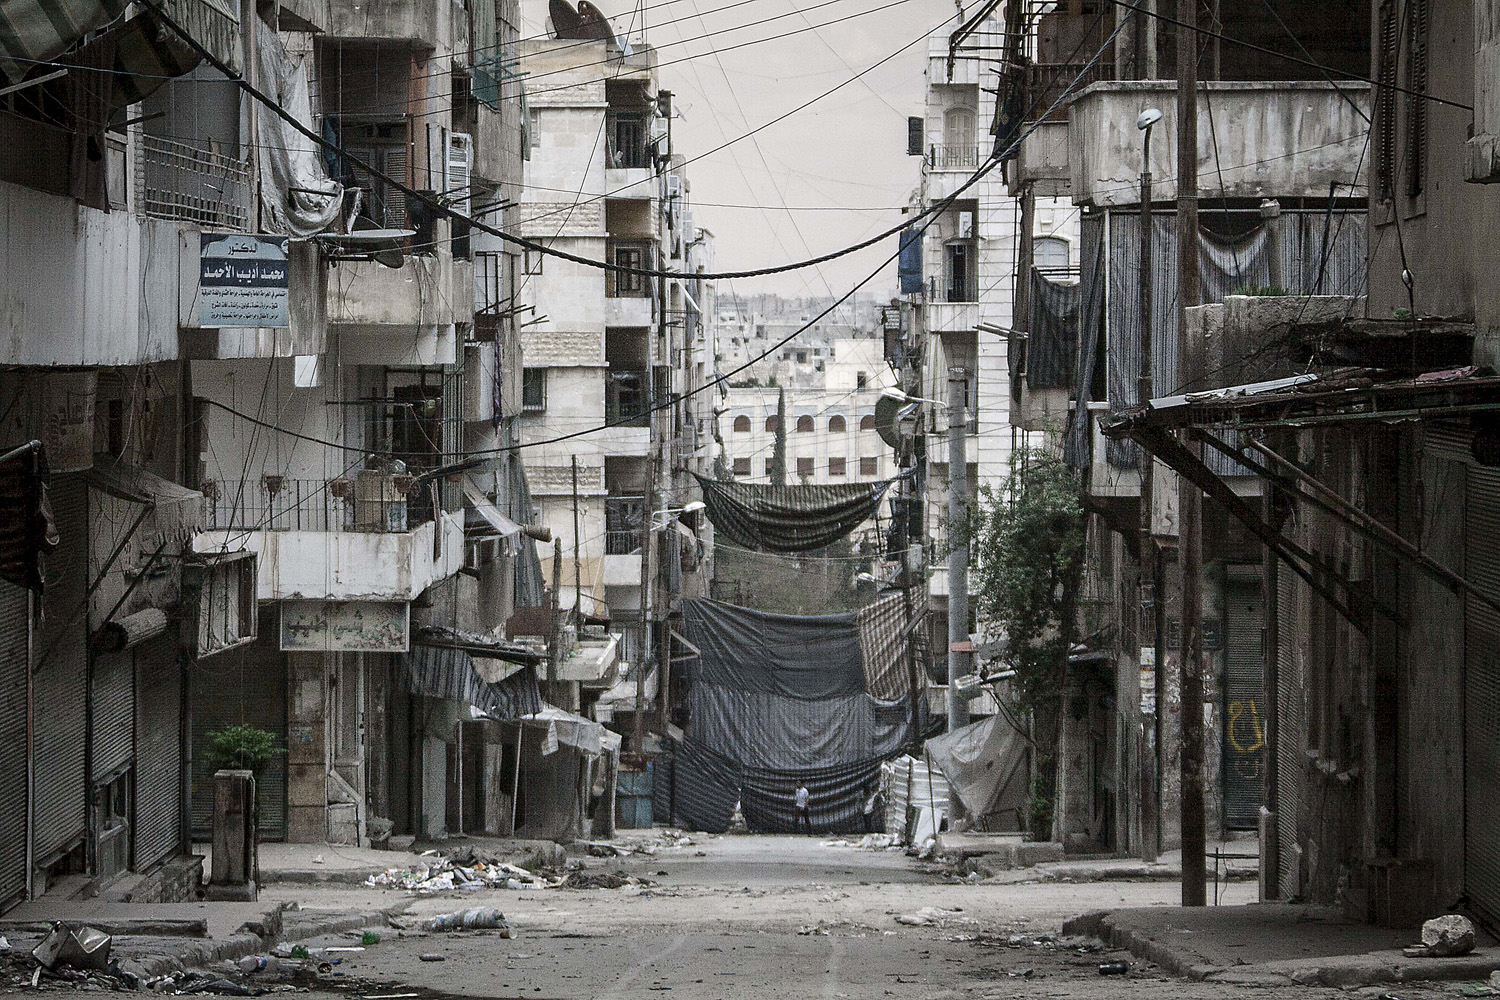 May 3, 2013. Veils used as cover from sniper fire are seen at Sheikh Maksoud front line, a majority-Kurdish neighborhood  in Syria.